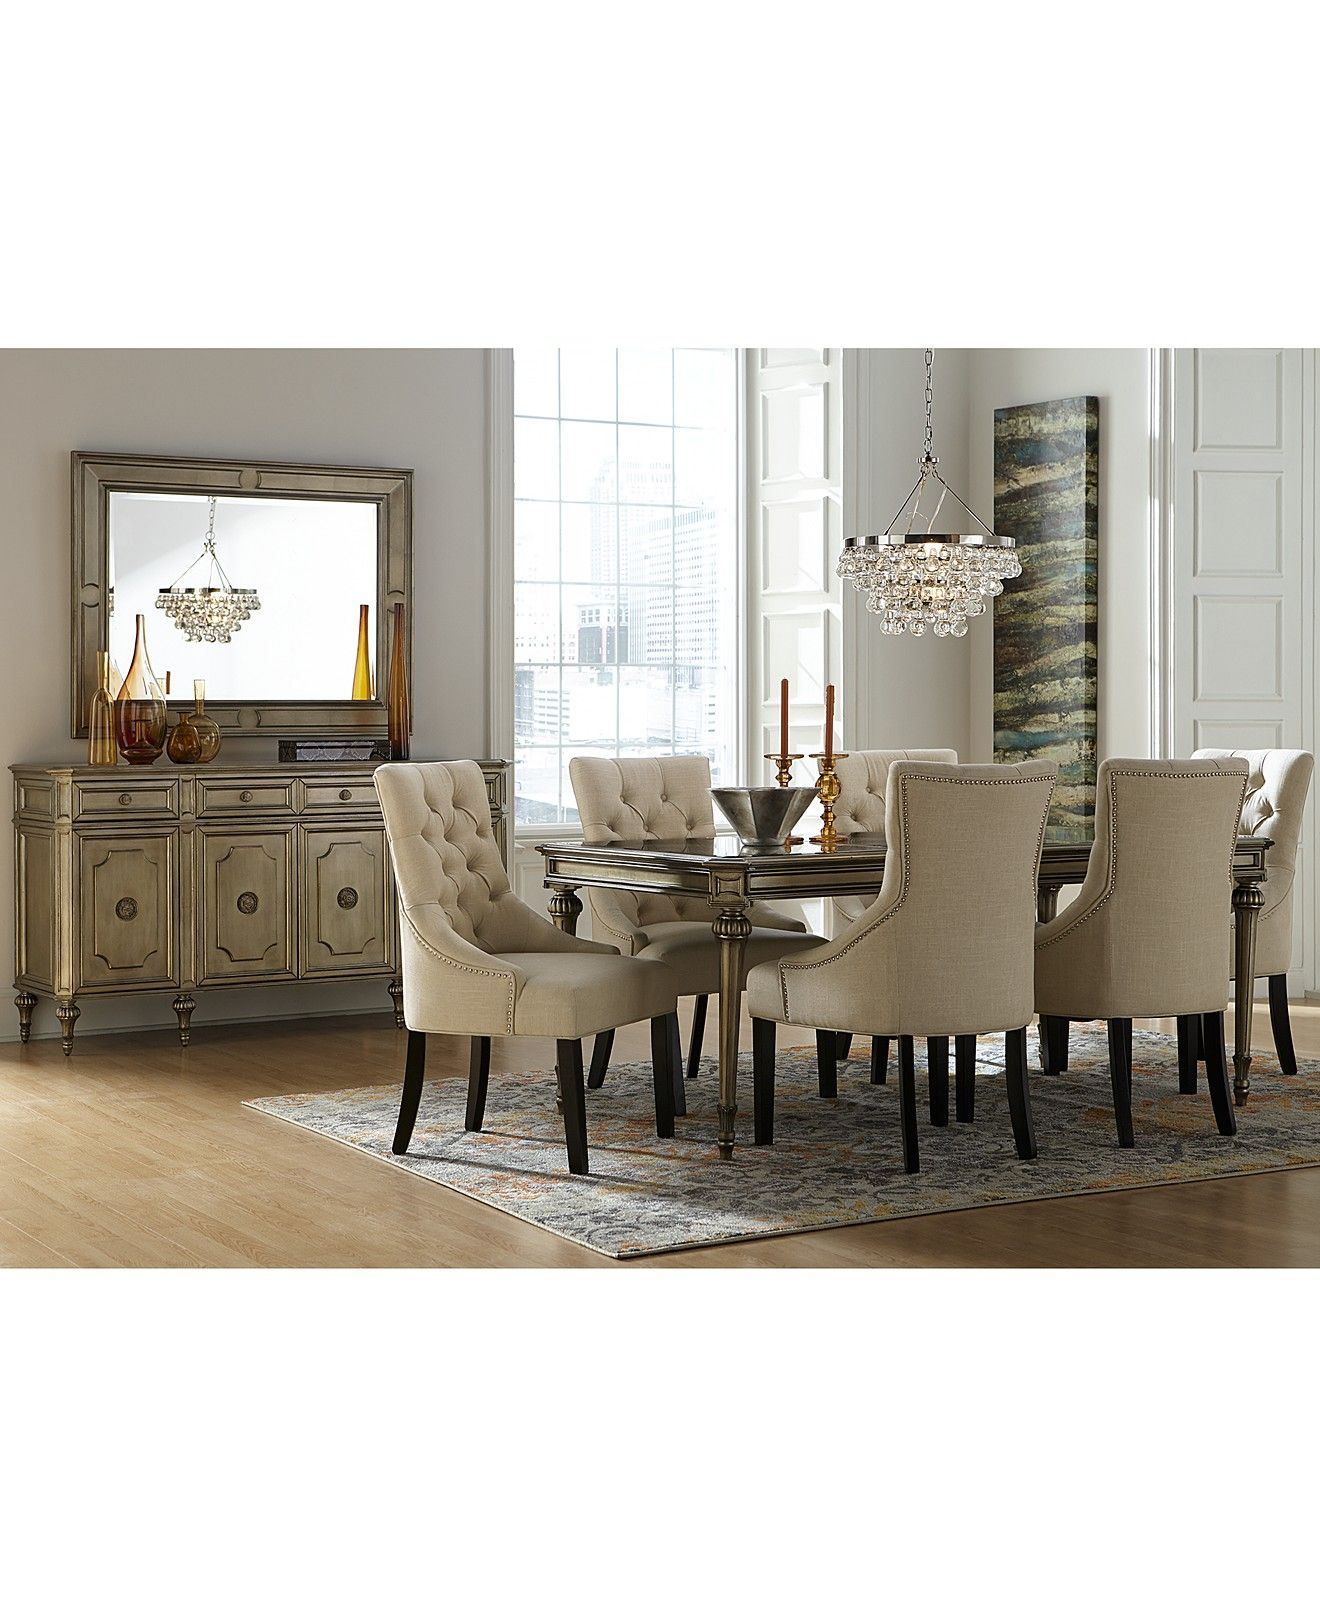 Prosecco Dining Set With Marais Chairs Dining Room Collections